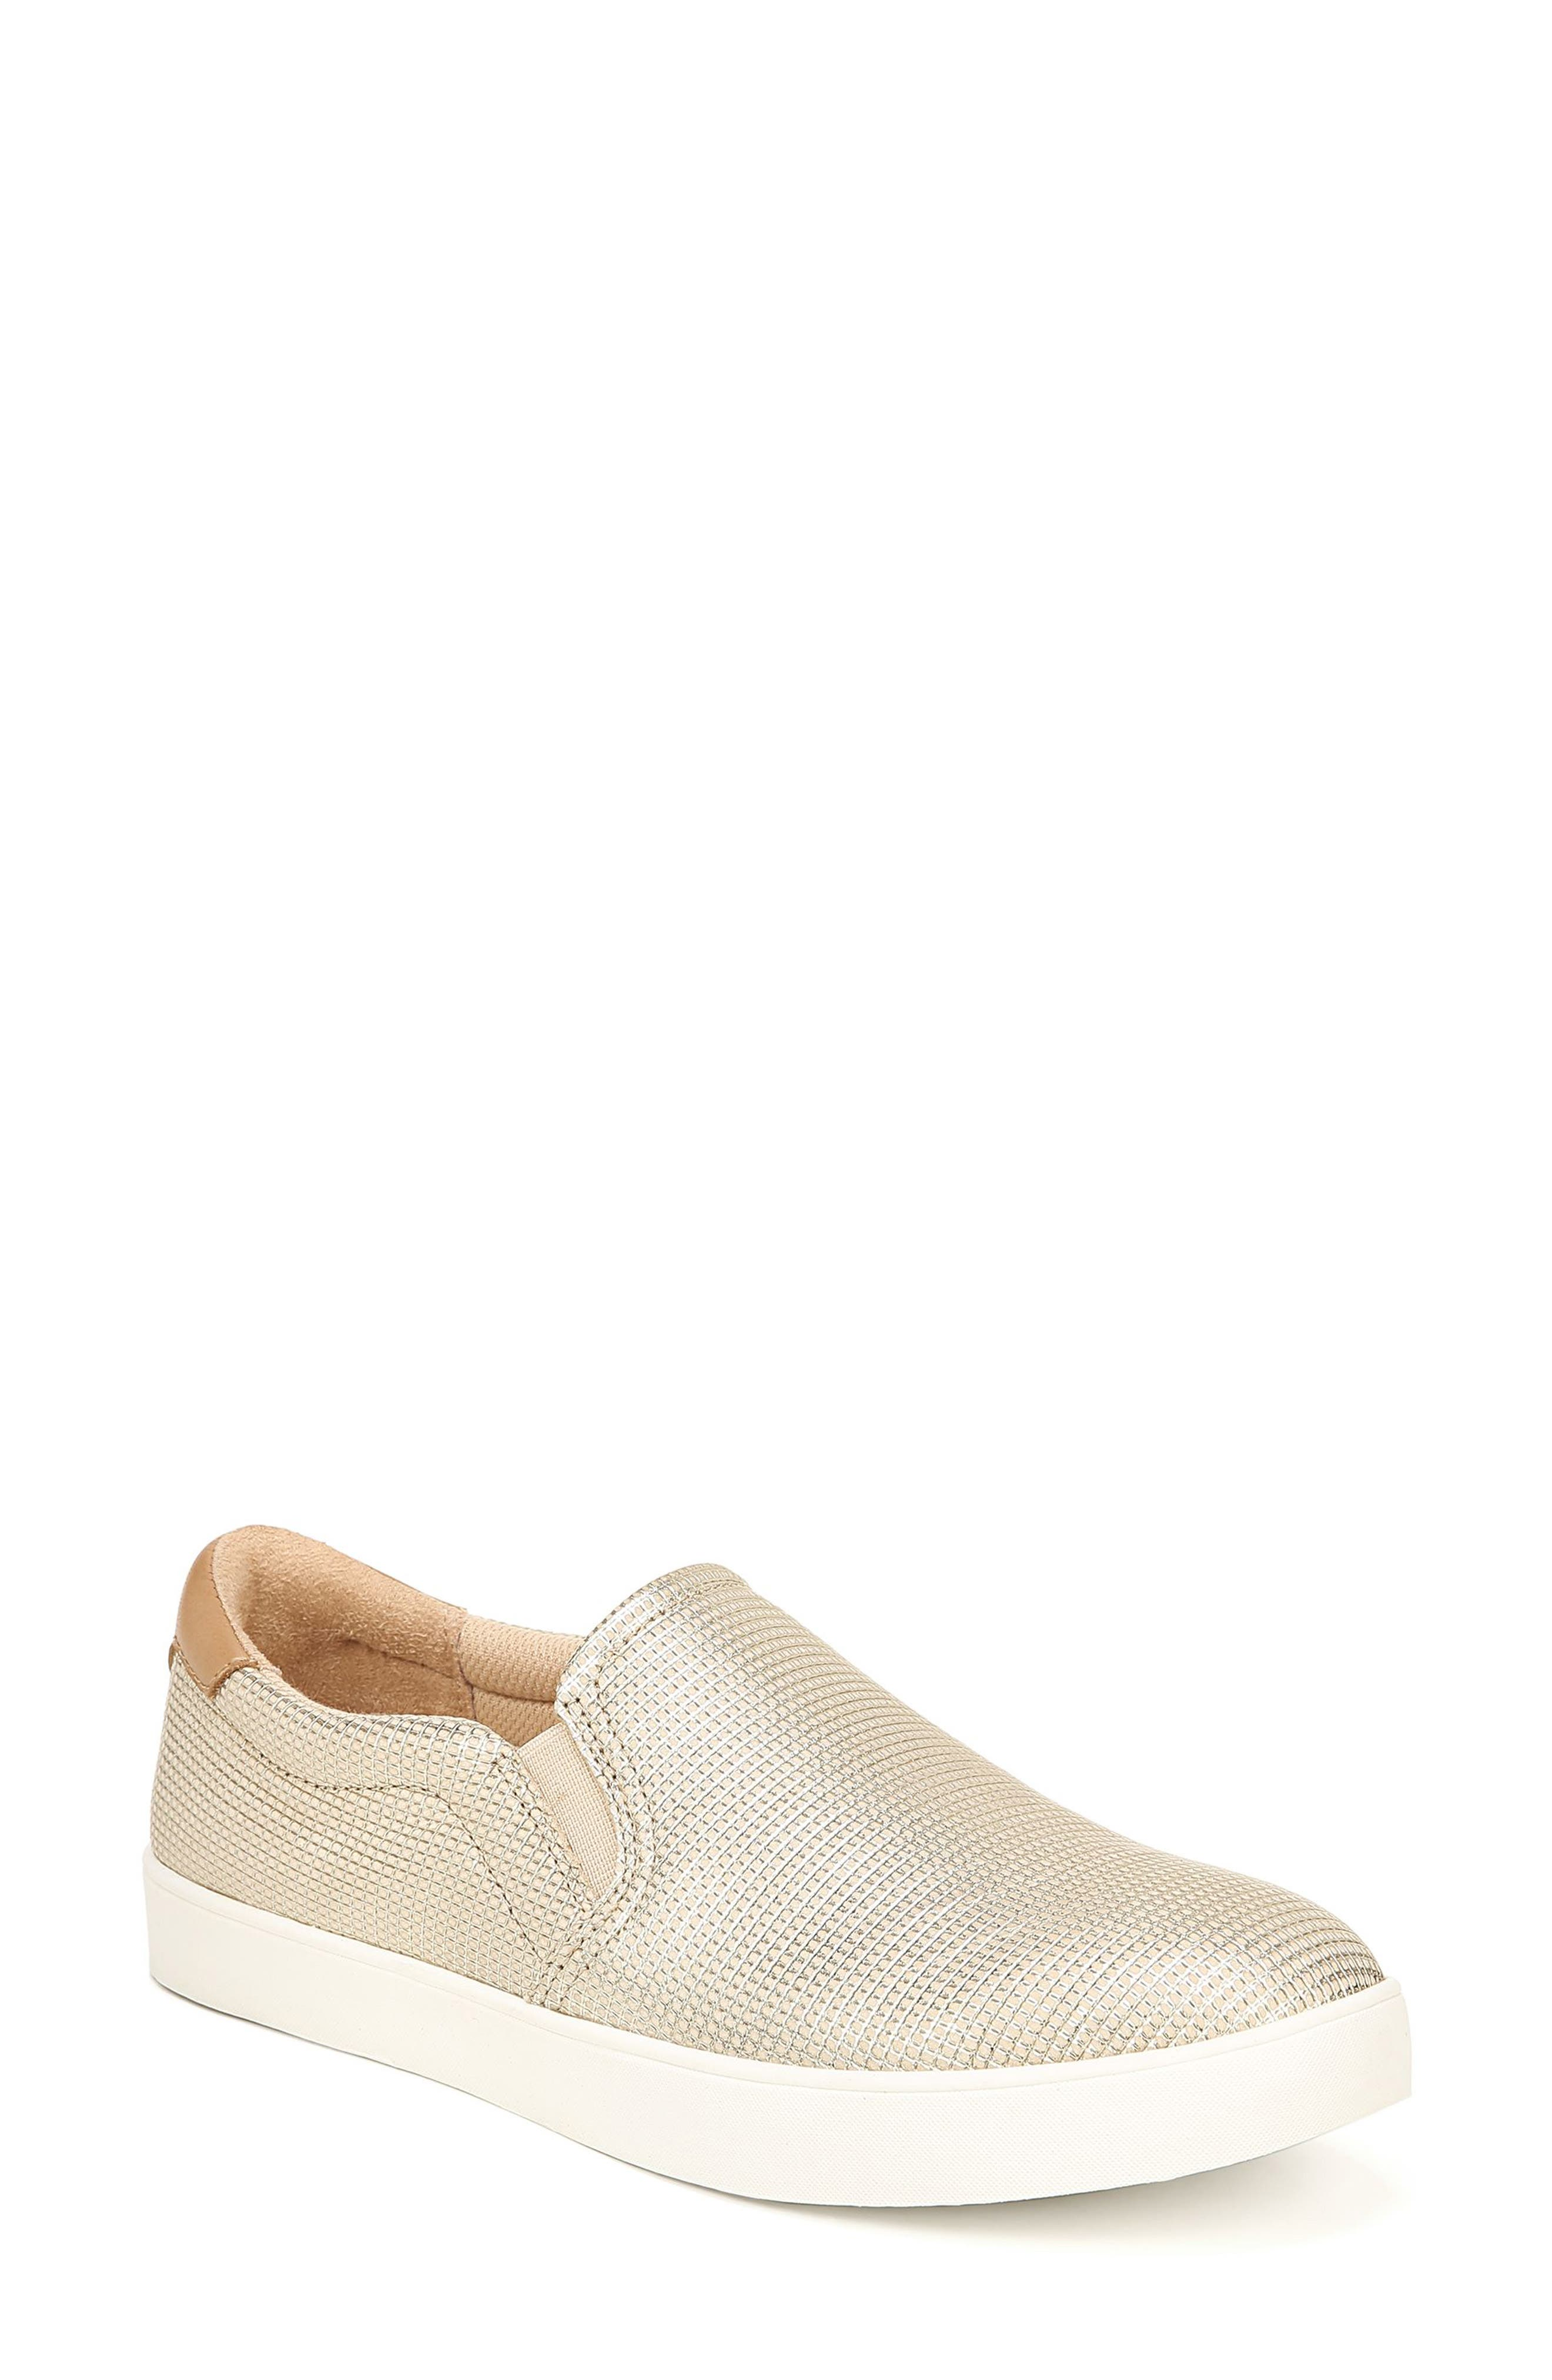 ,                             Original Collection 'Scout' Slip On Sneaker,                             Main thumbnail 1, color,                             BEIGE LEATHER